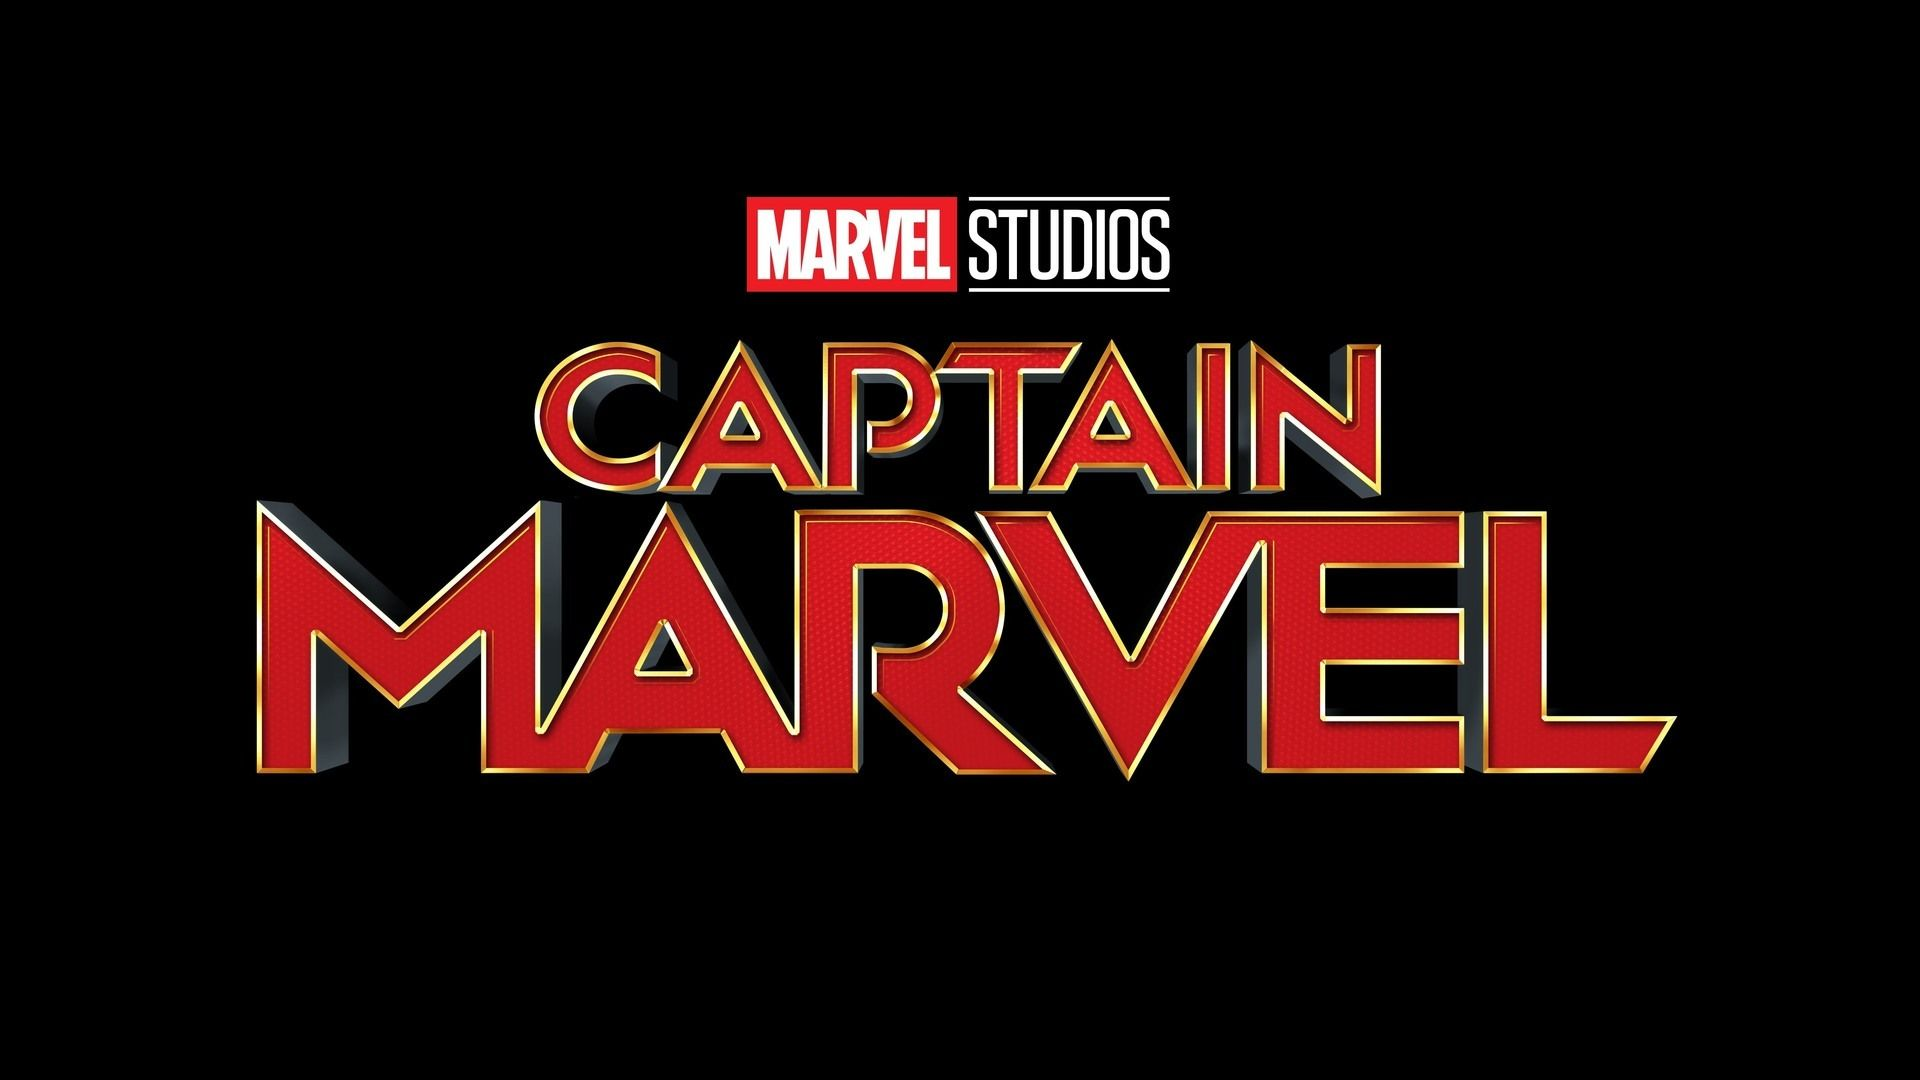 1920x1080 Top 11 HD Captain Marvel Wallpapers That You Must Get Today